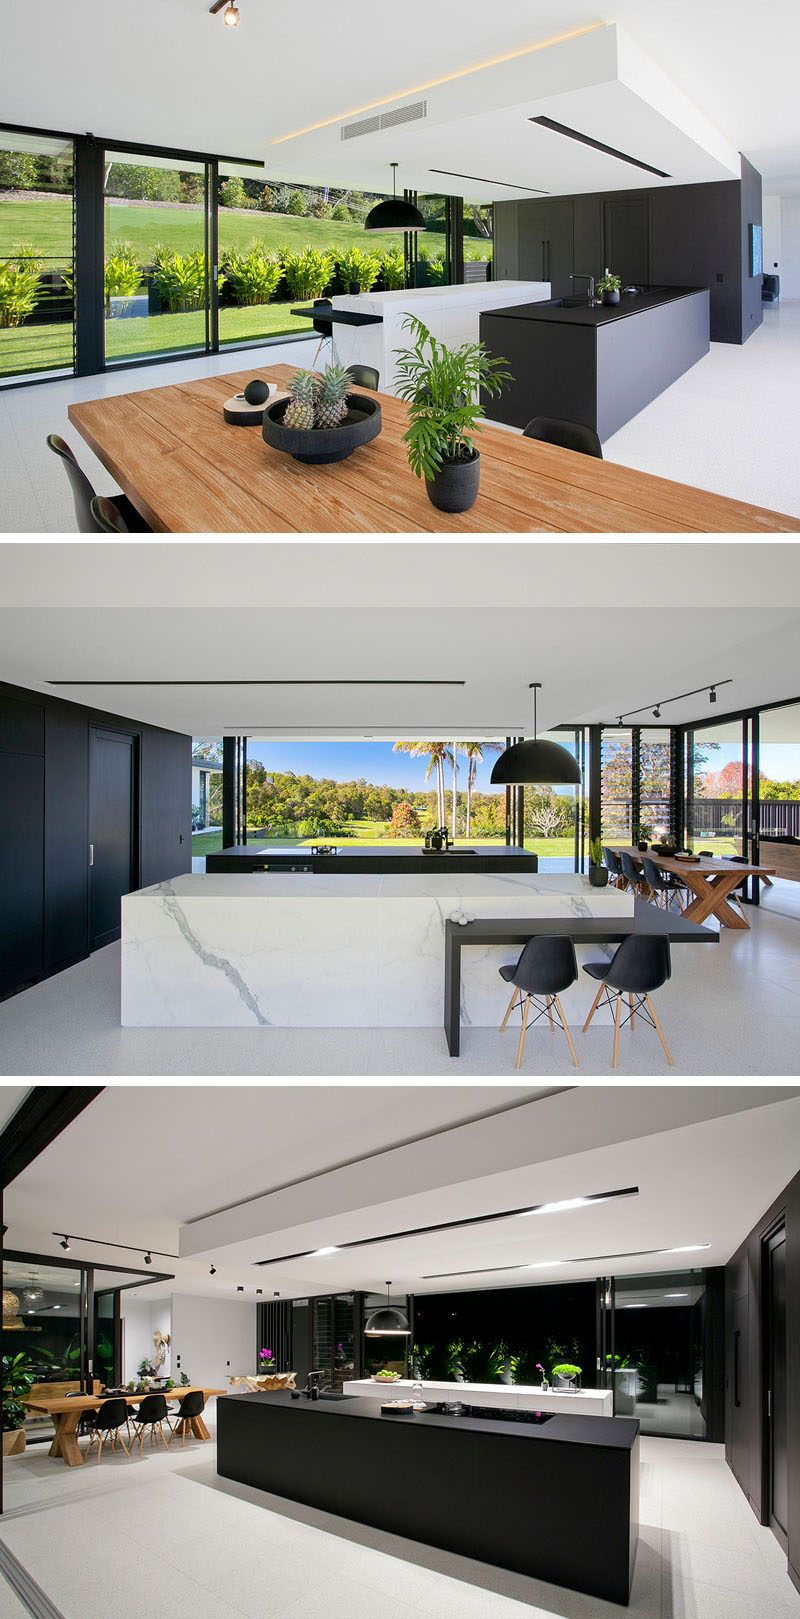 Cuisine Noir Et Blanc Mat see inside the home this architect designed for her own